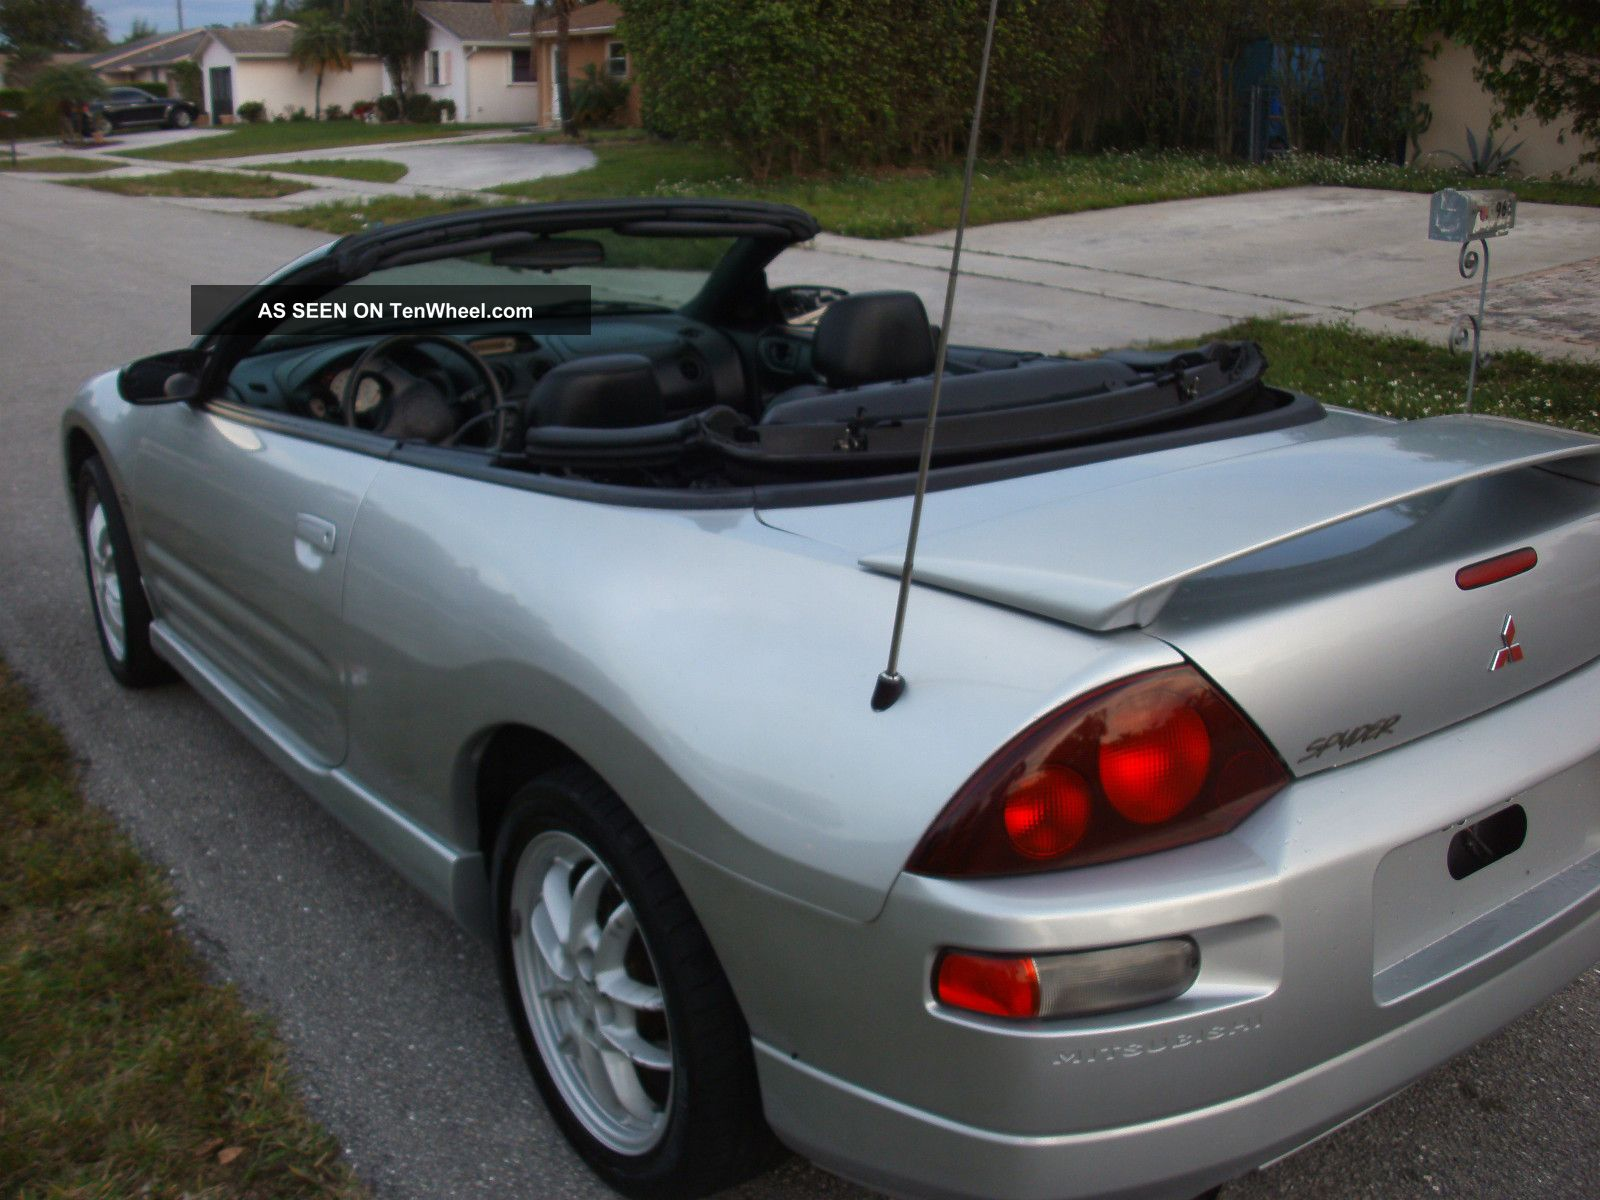 2001 mitsubishi eclipse spyder gt convertible 2 door 3 0l. Black Bedroom Furniture Sets. Home Design Ideas